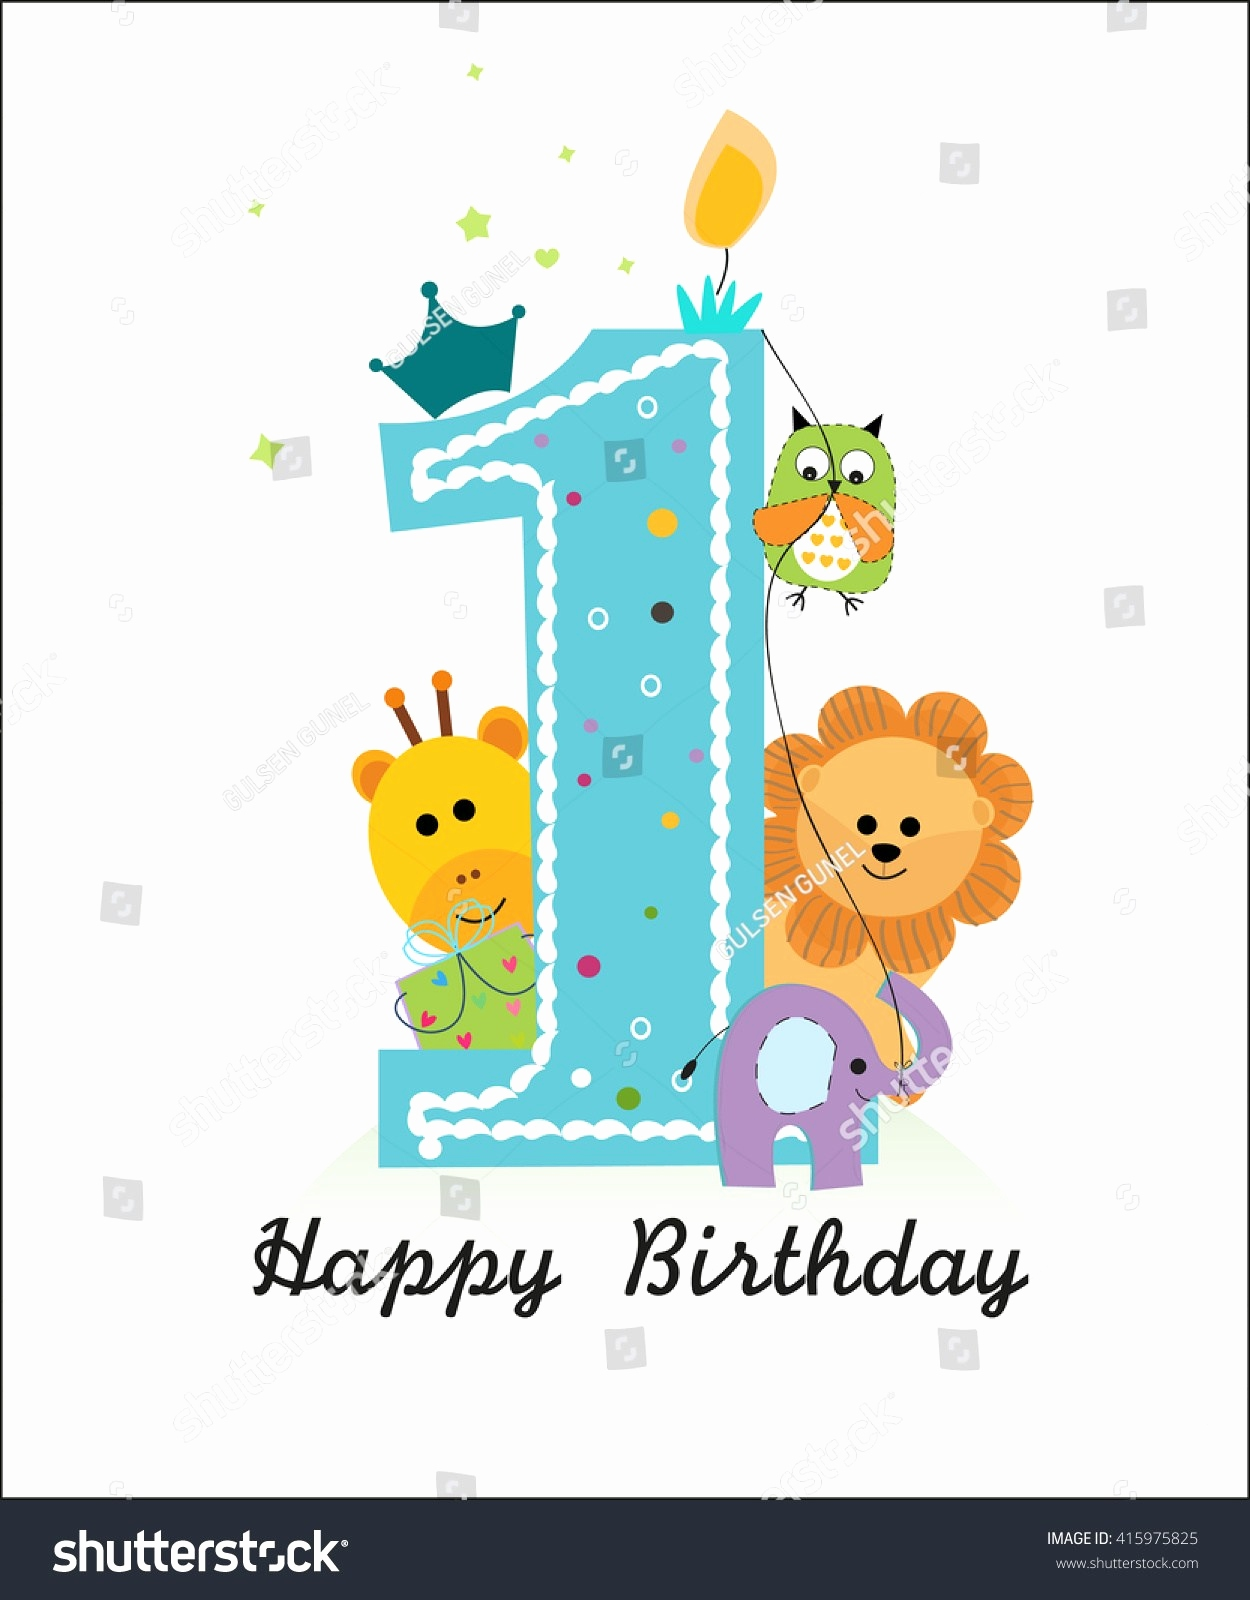 happy one year old birthday card ; one-year-old-birthday-card-awesome-year-old-boy-birthday-card-invitation-card-of-one-year-old-birthday-card